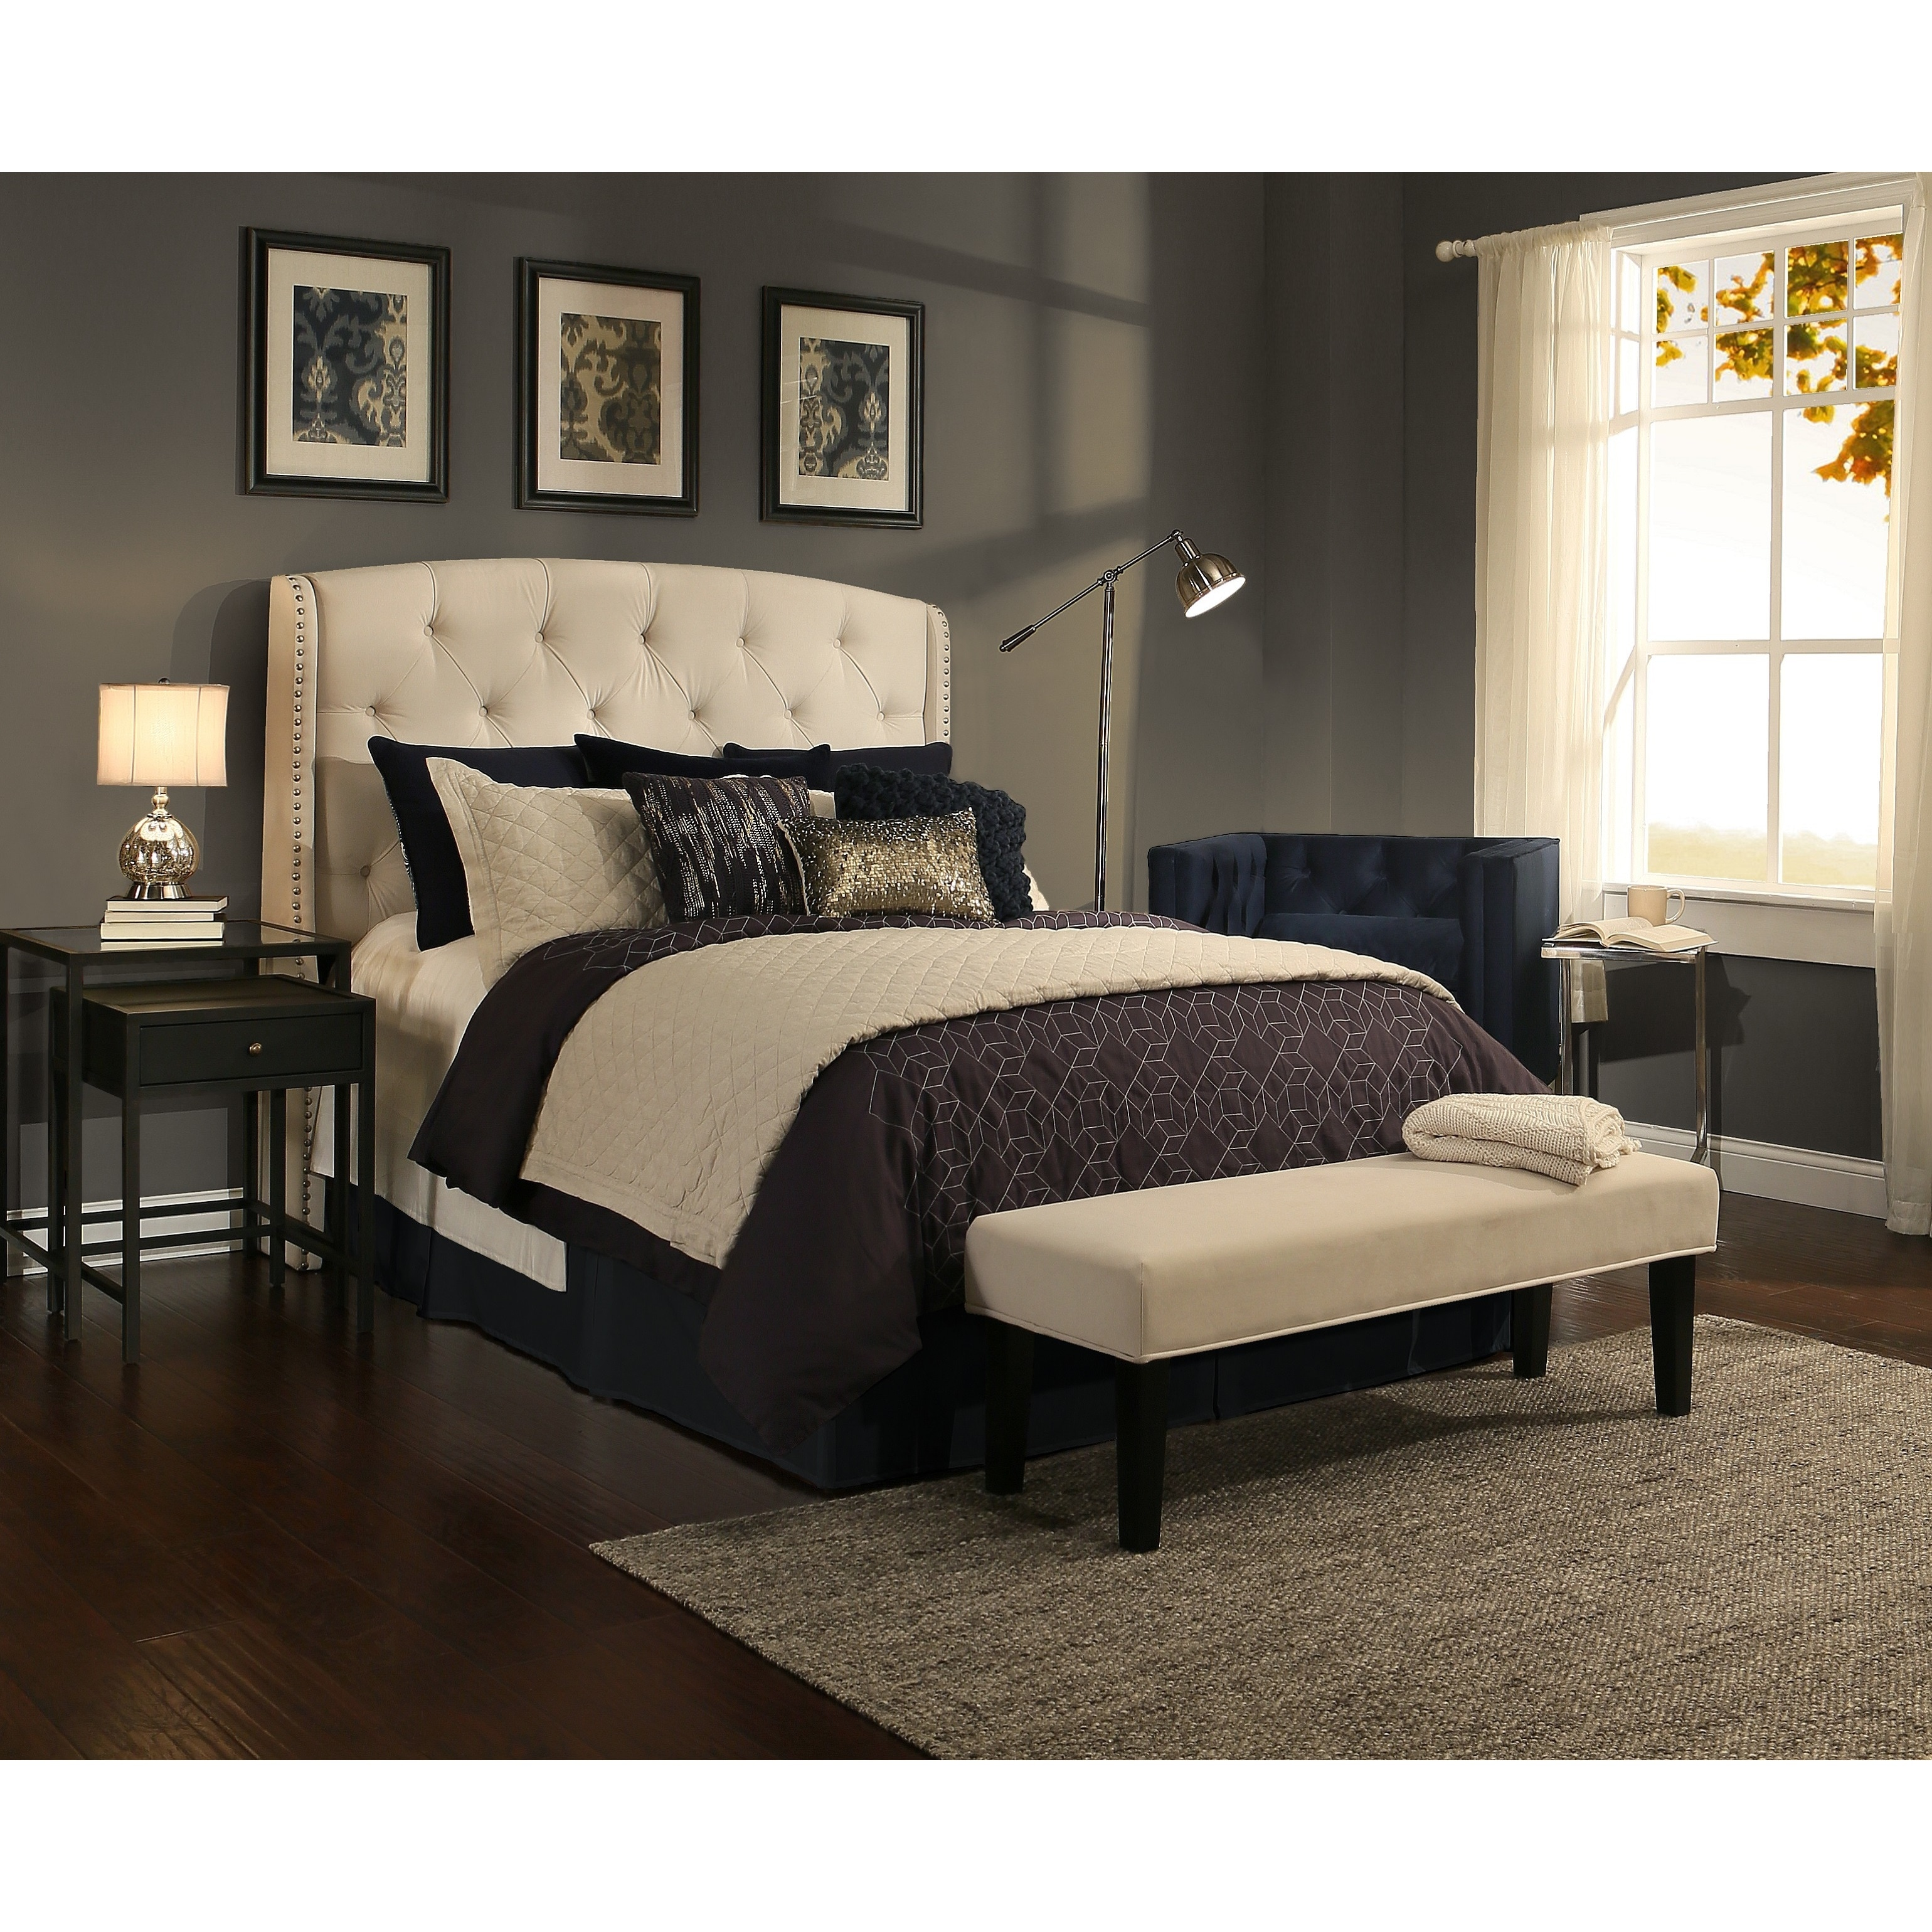 Republic Design House Peyton Ivory Tufted Upholstered Wingback Headboard/  Padded Bench Collection - Free Shipping Today - Overstock.com - 18417626